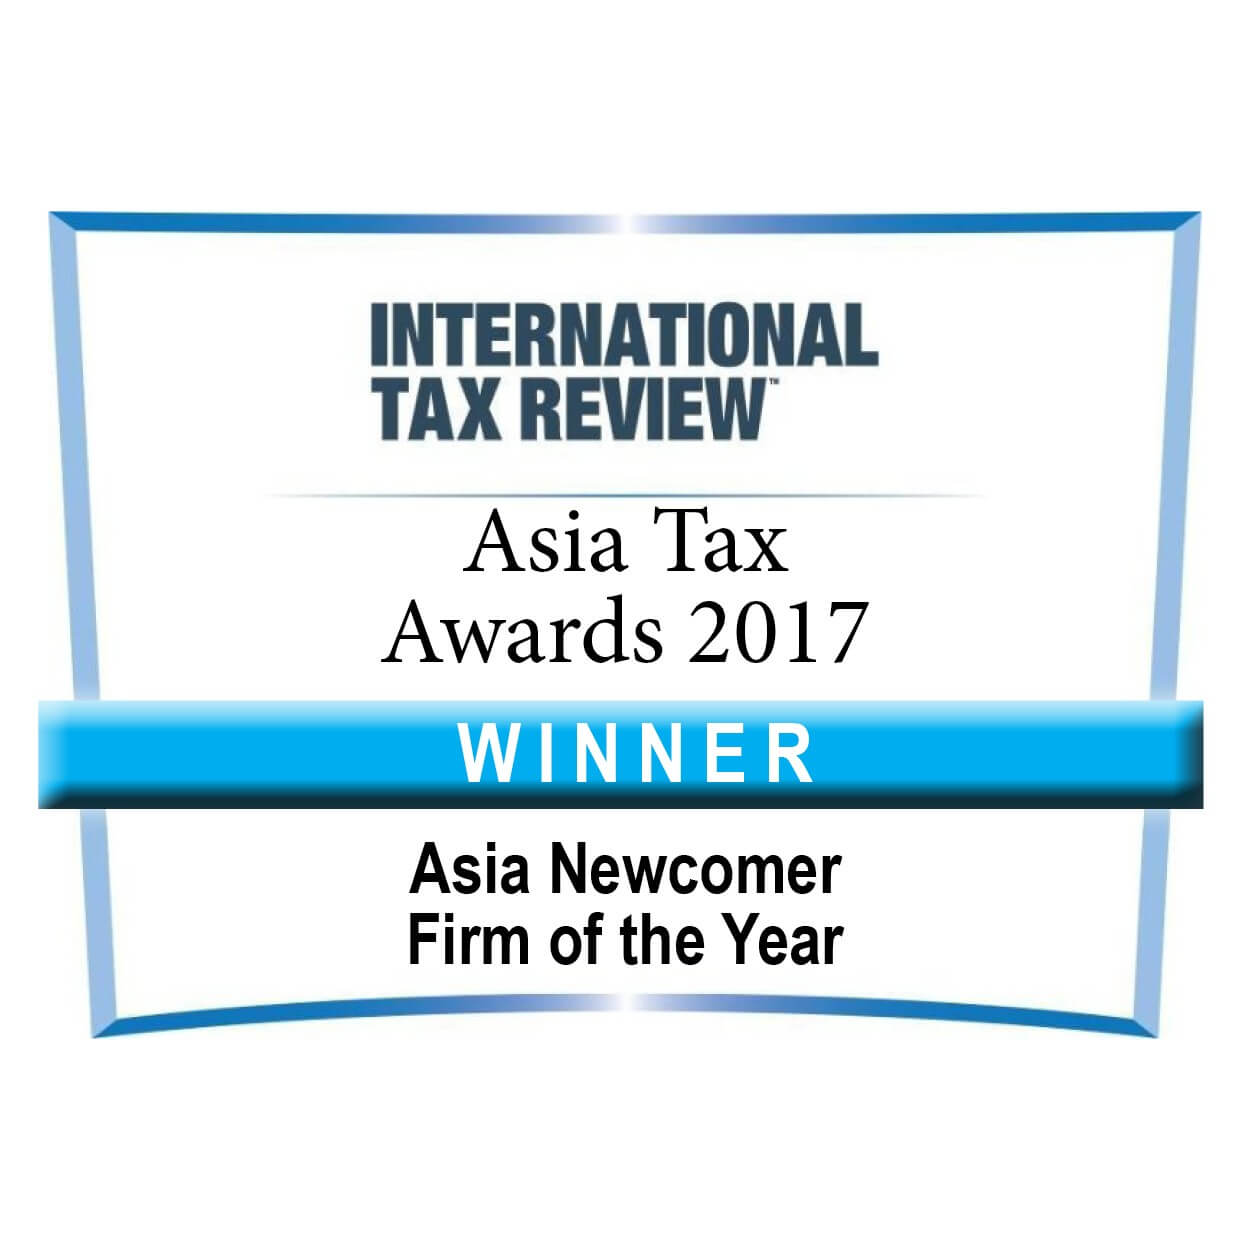 Asia TP Newcomer of the Year Asia Tax Awards Winner 2017